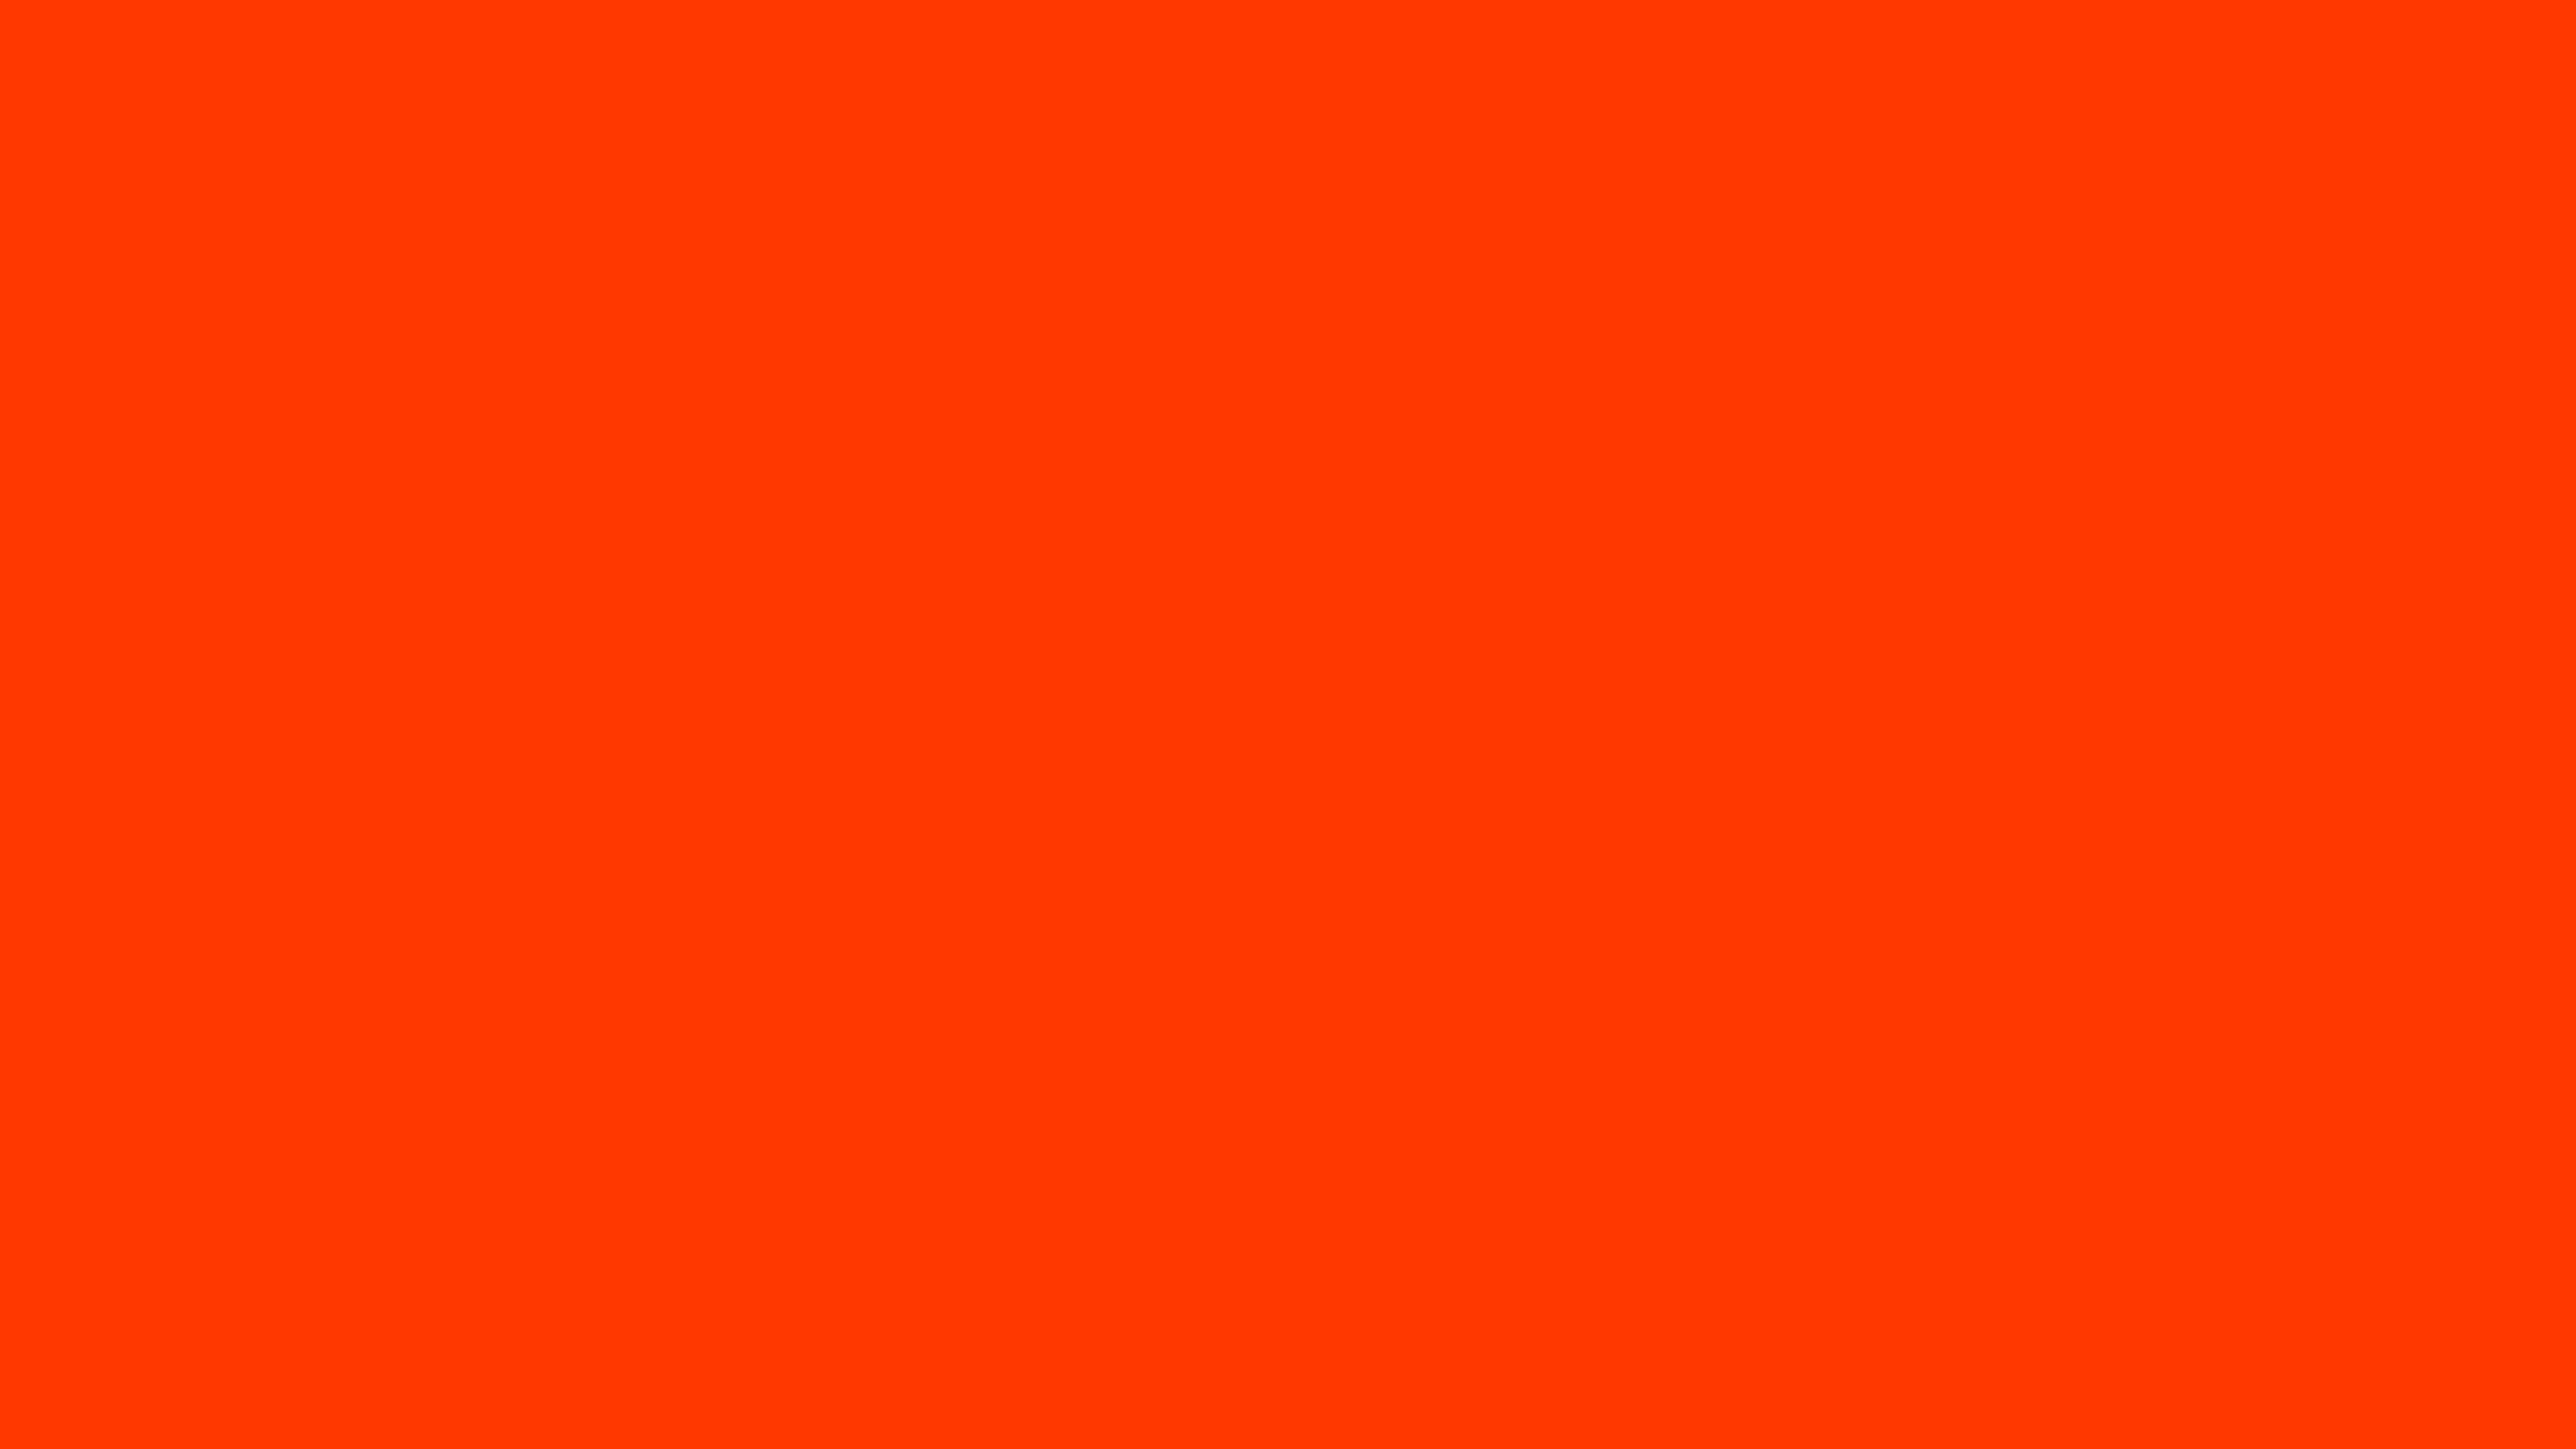 4096x2304 Coquelicot Solid Color Background